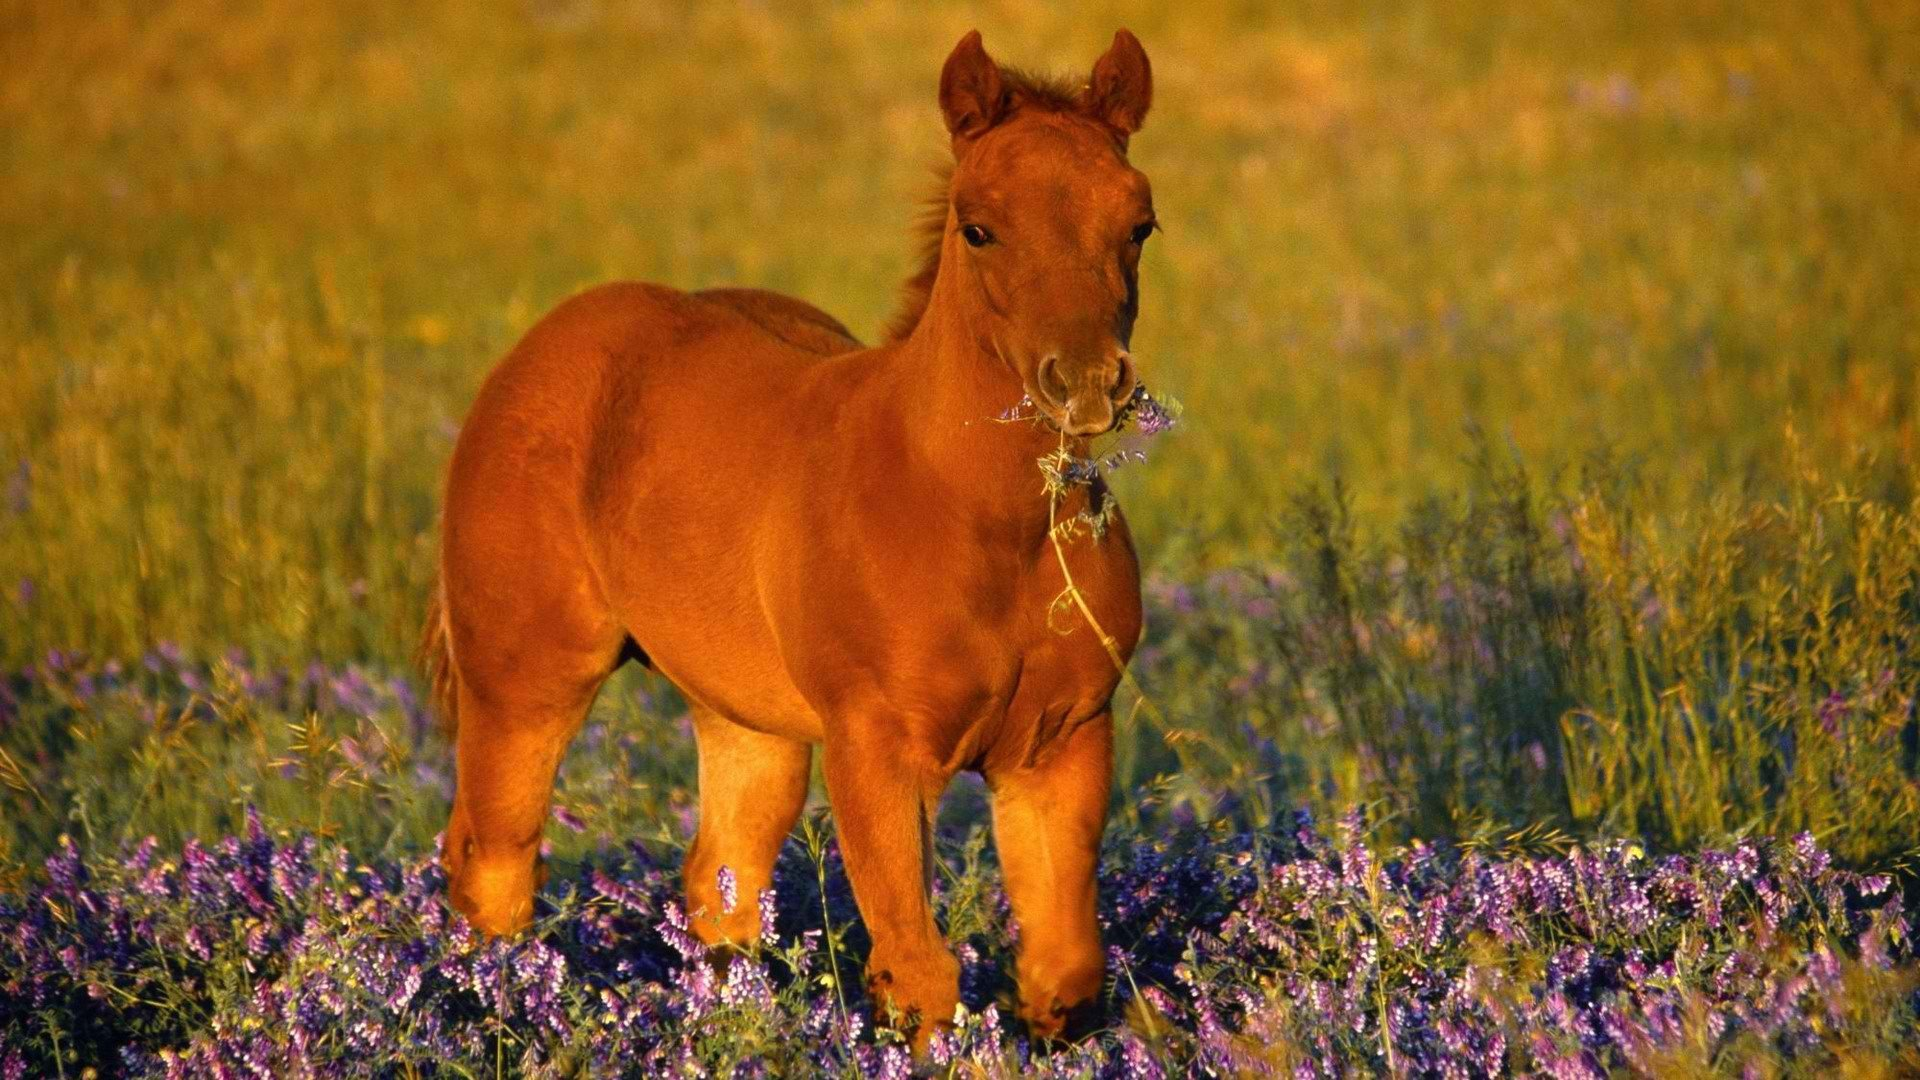 Awesome Horse free wallpaper ID:23797 for hd 1920x1080 desktop